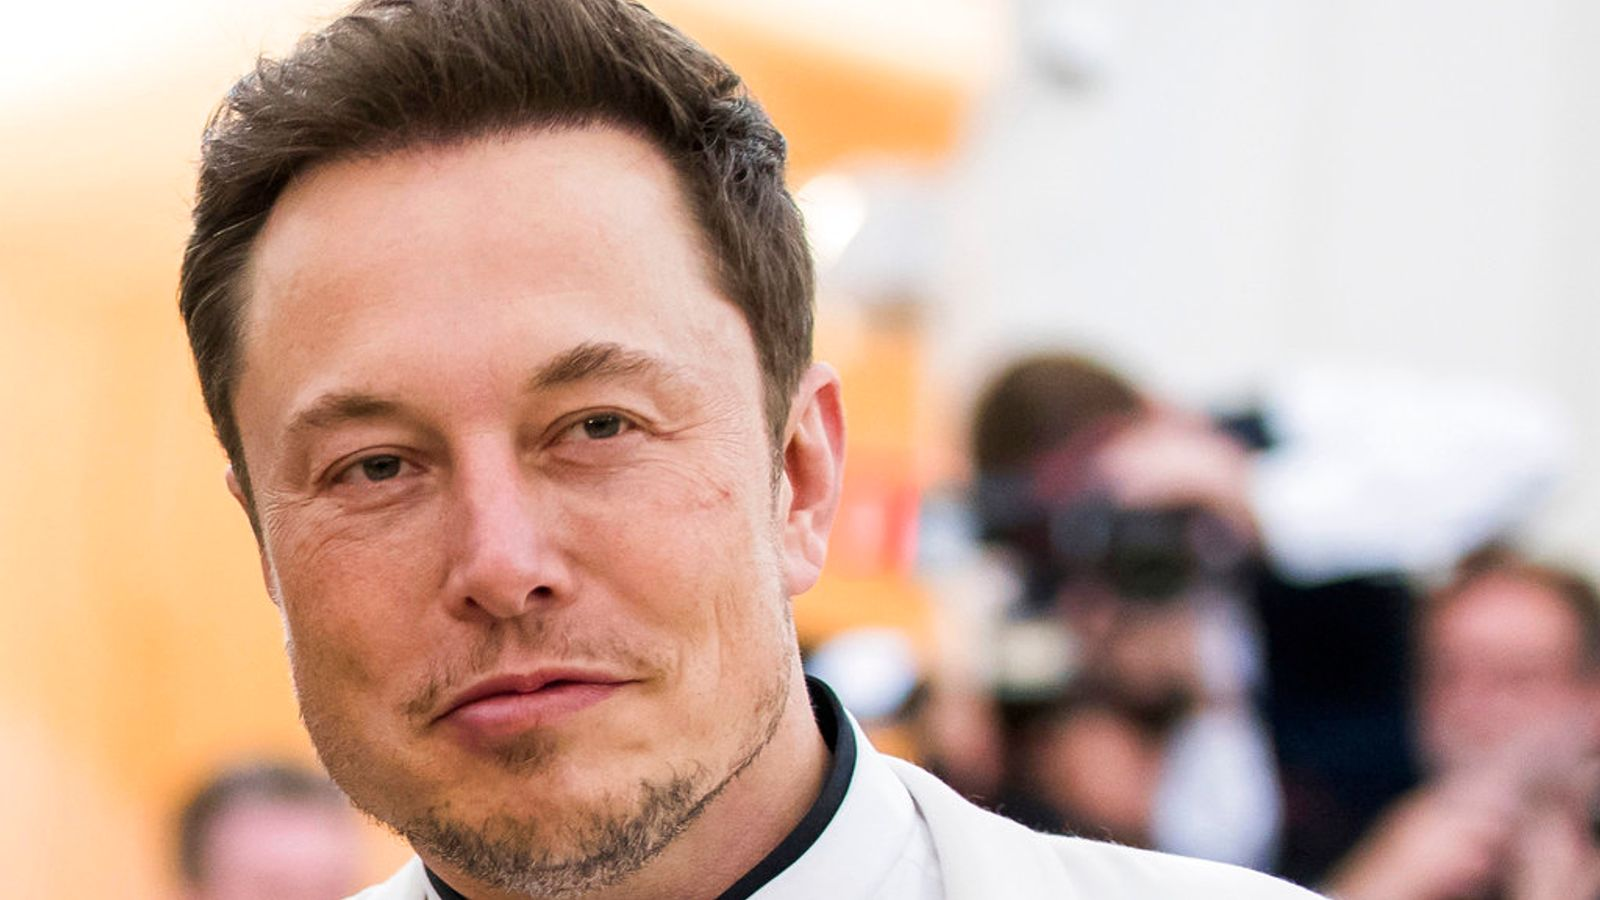 Tesla boss Elon Musk is no longer world's richest person as share prices in car company drop